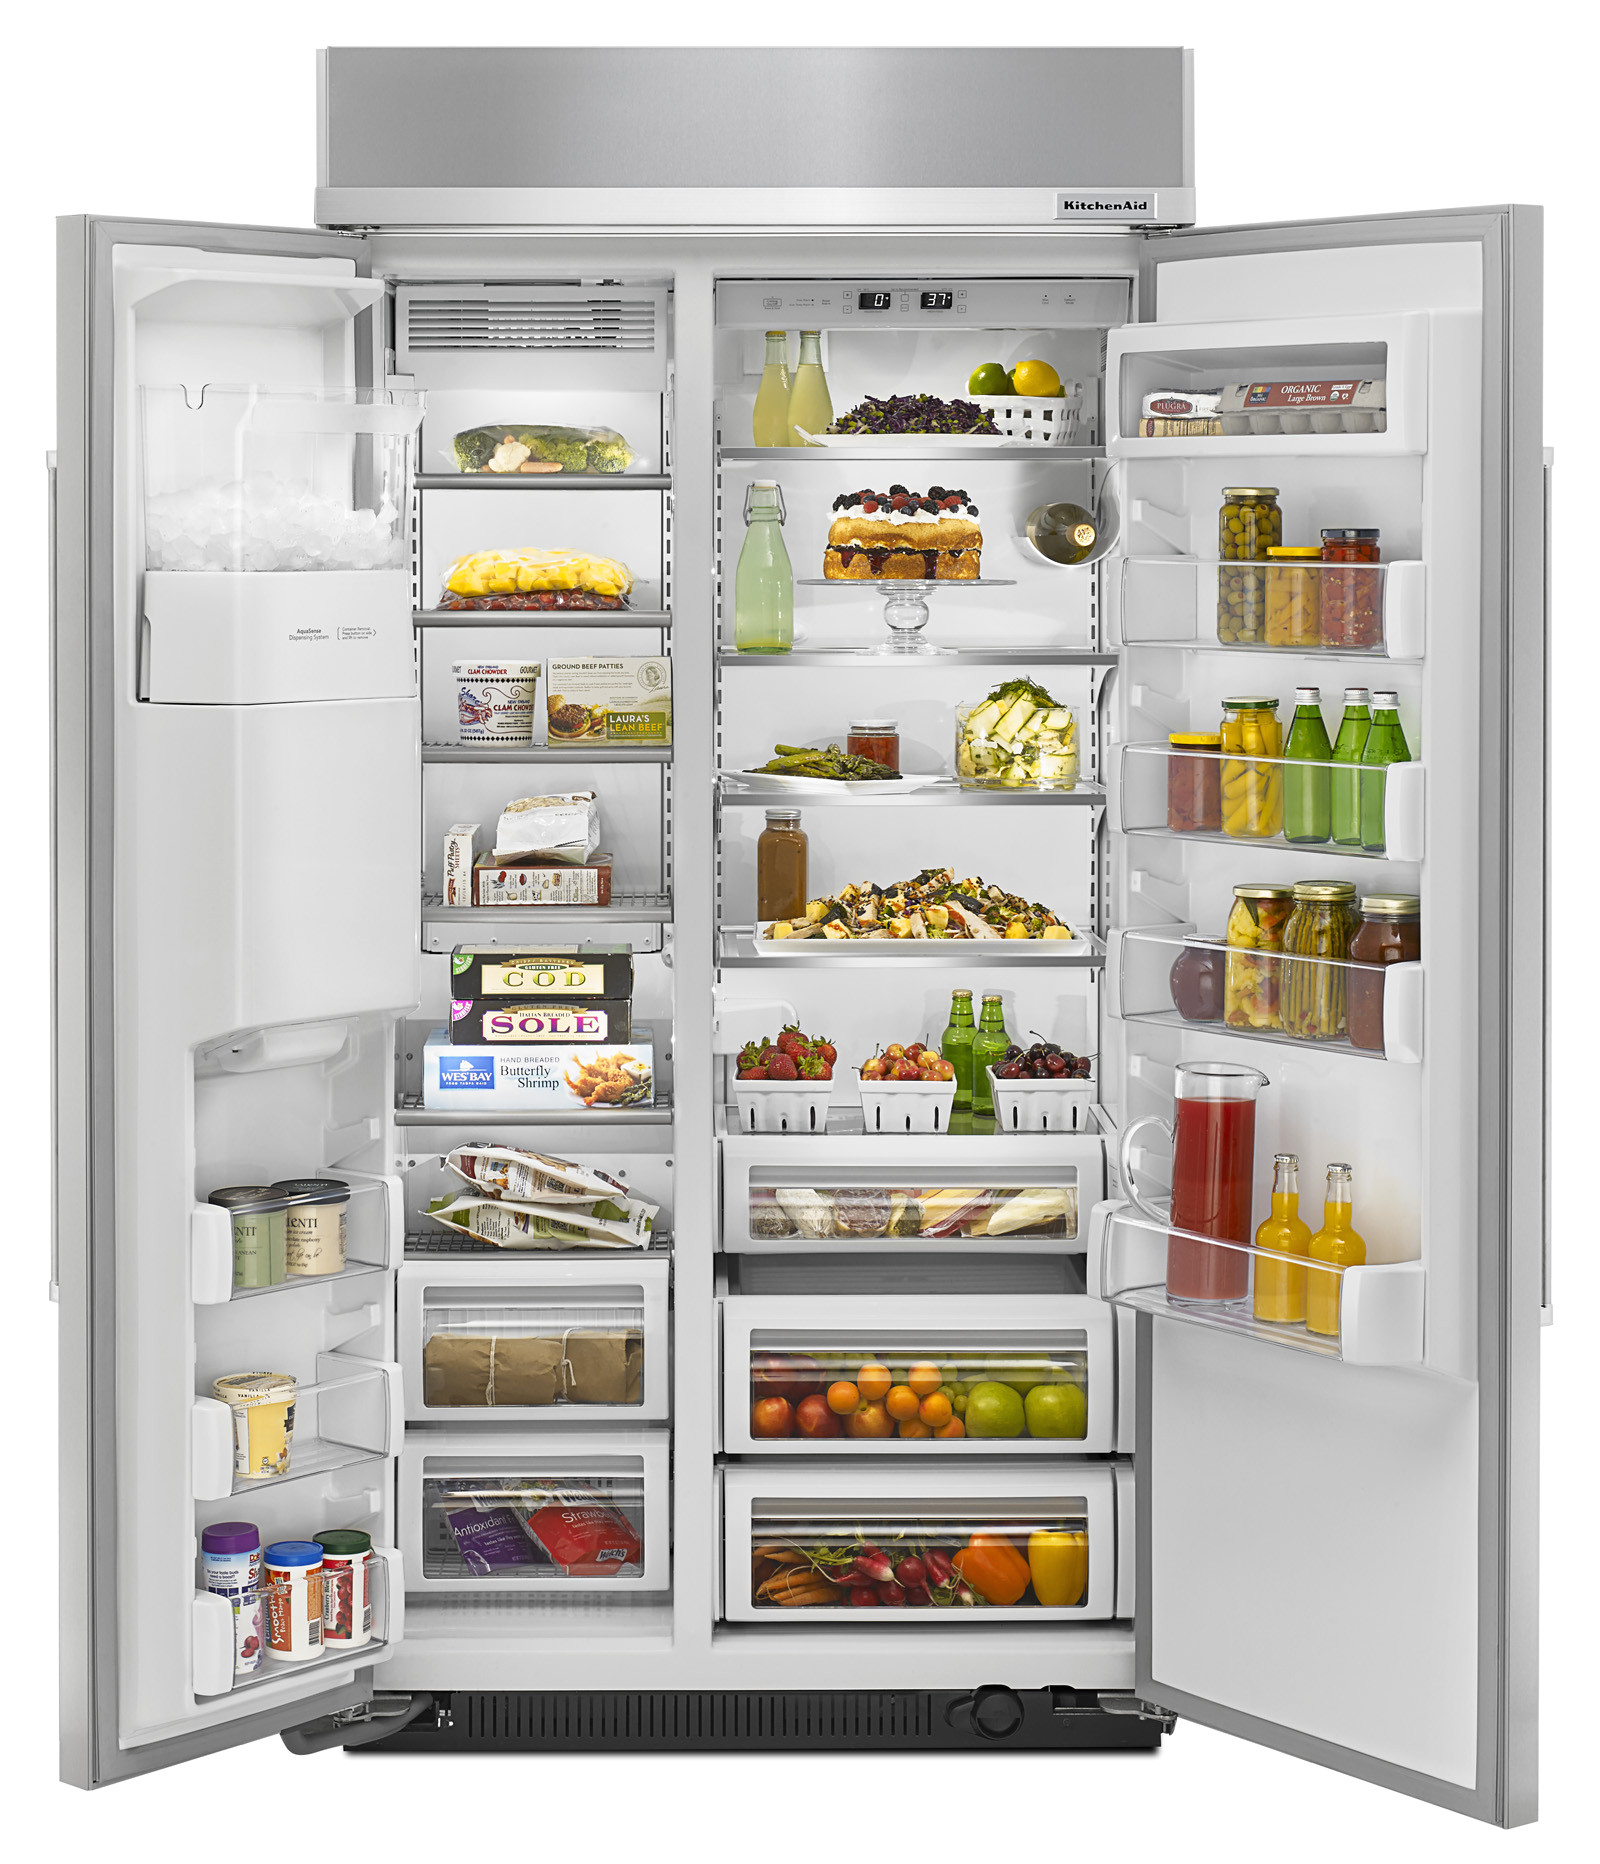 kitchenaid kbsd602ess 25 0 cu ft built in refrigerator stainless steel sears outlet